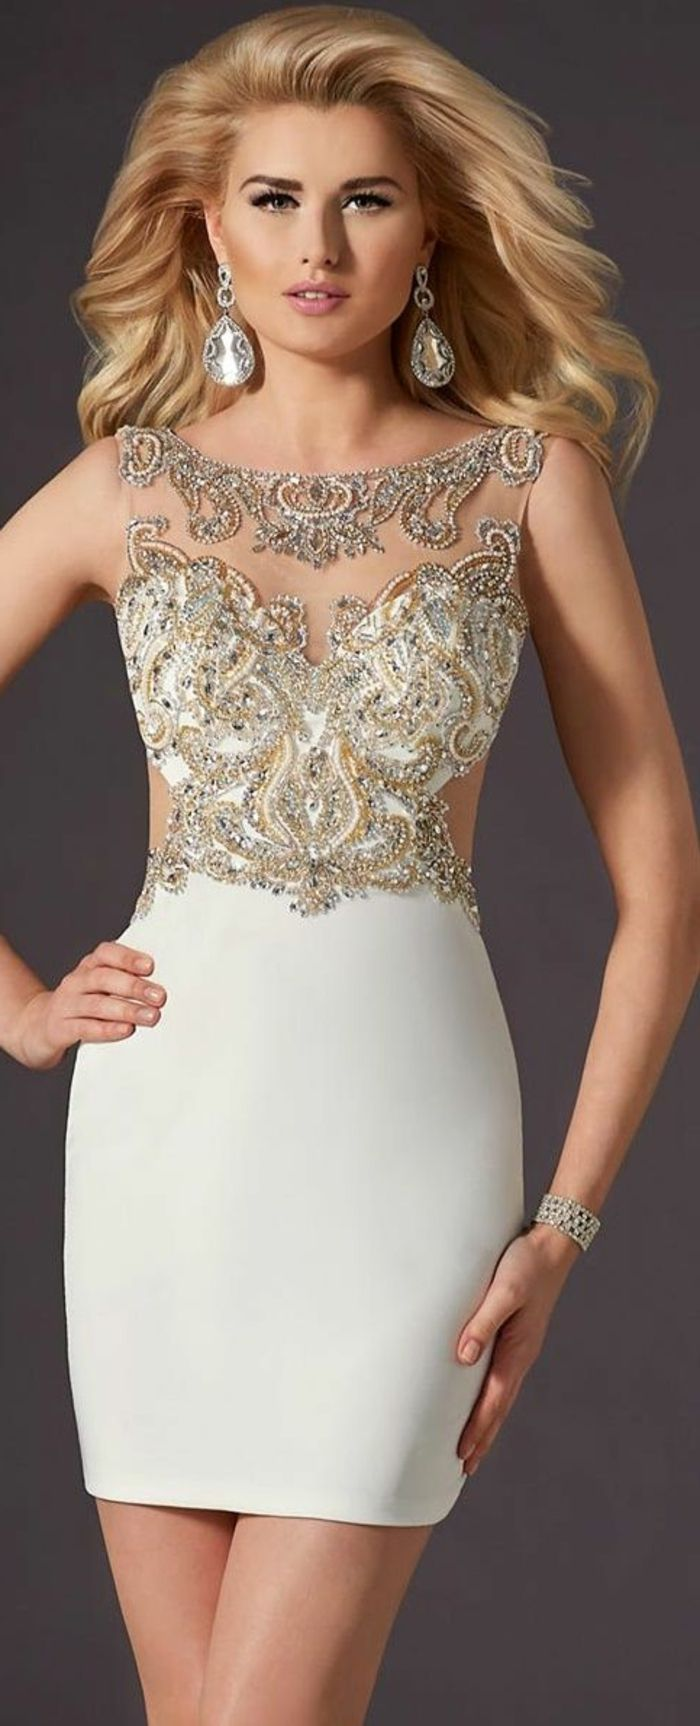 Jolie robe de cocktail pas cher